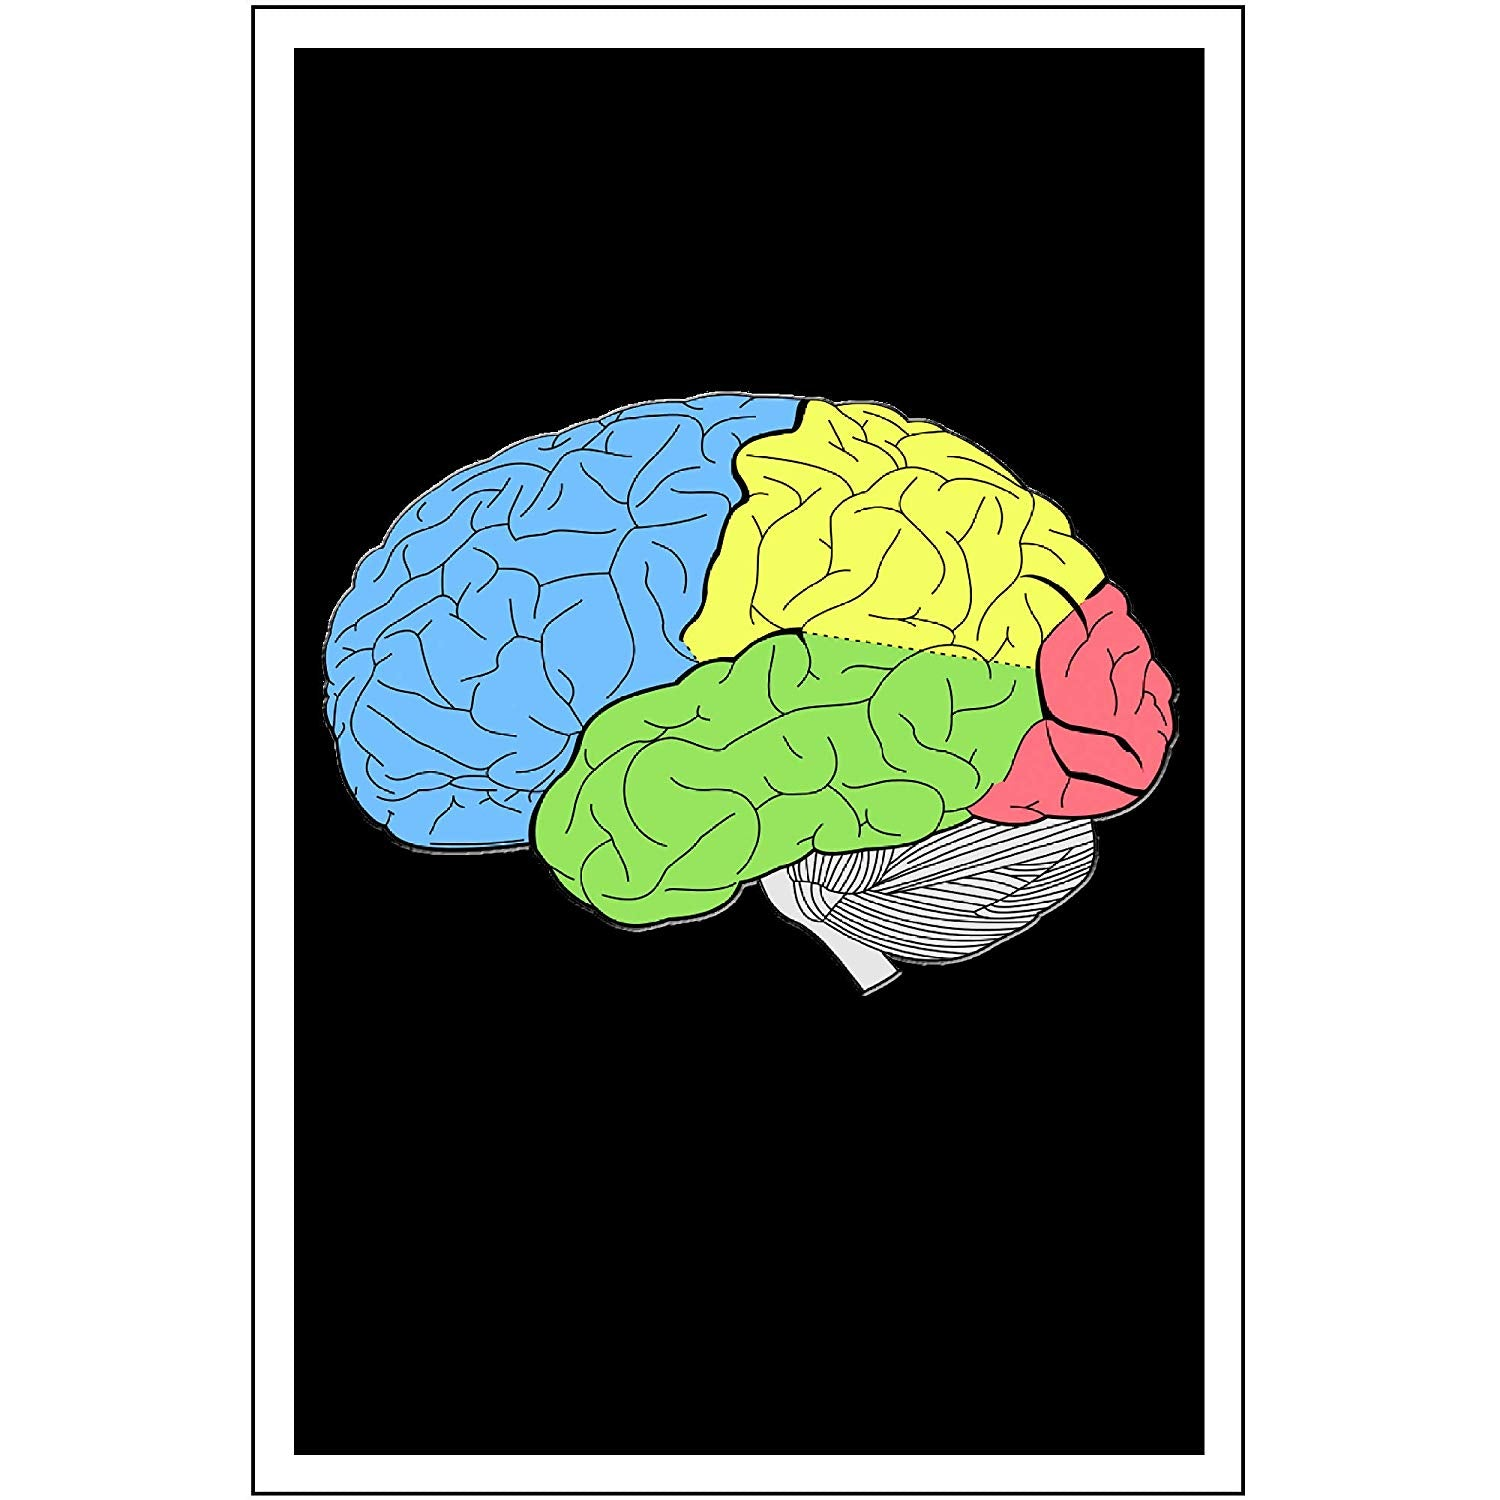 "Spitzy's Lobes of Human Brain Anatomy Science Teacher Poster (12"" x 18"" Includes White .5"" White Border)"